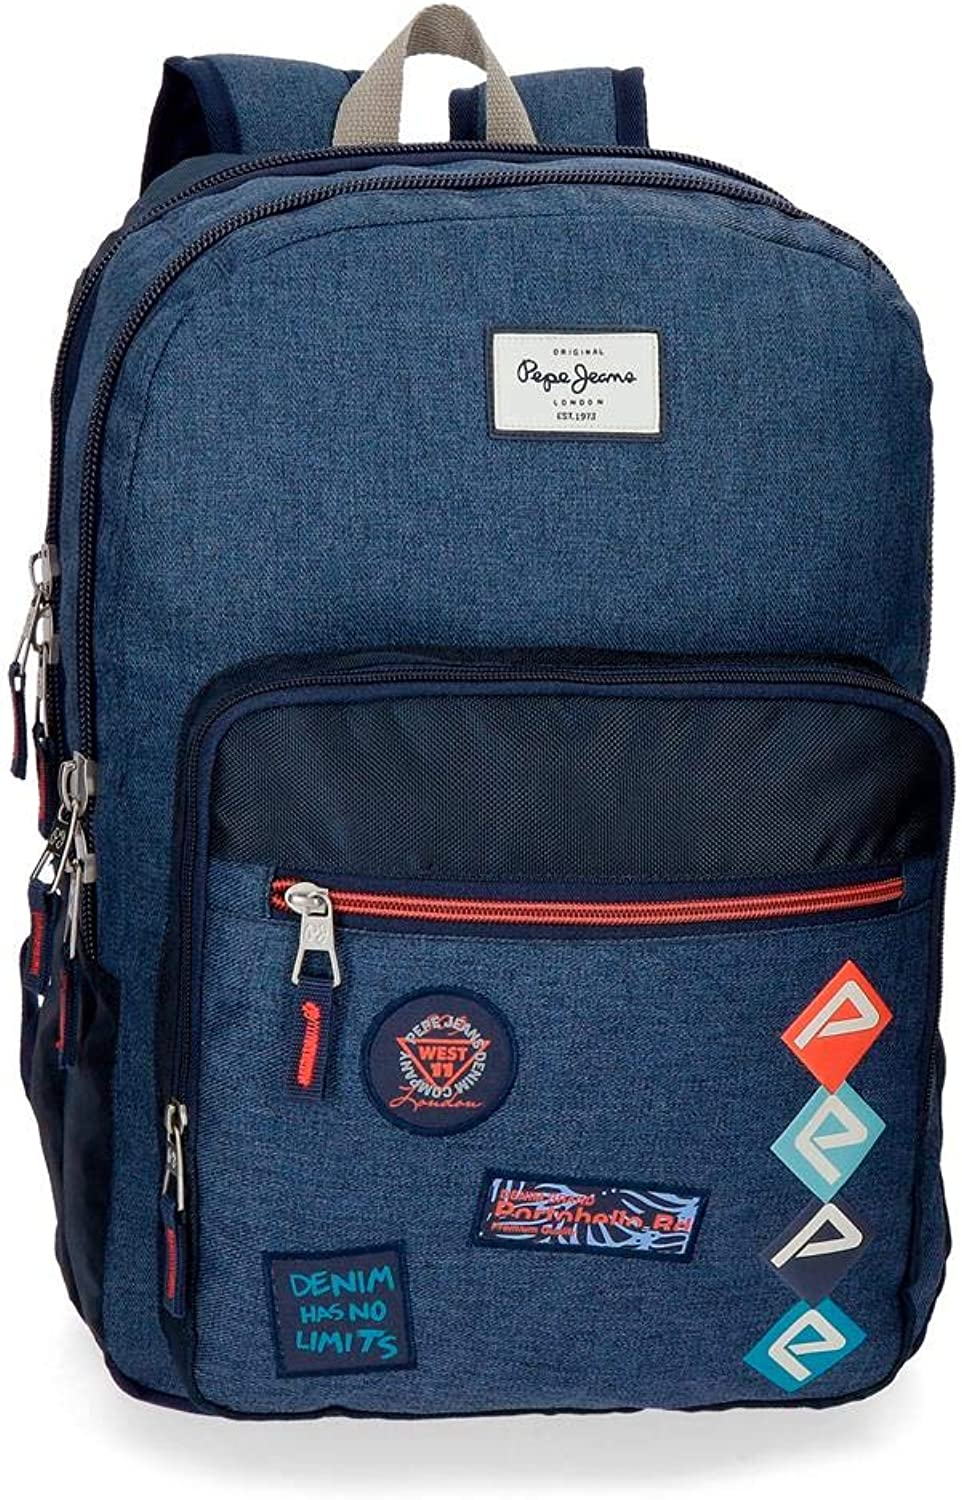 Pepe Jeans Paul School Backpack 44 Centimeters 19.8 bluee (blue)